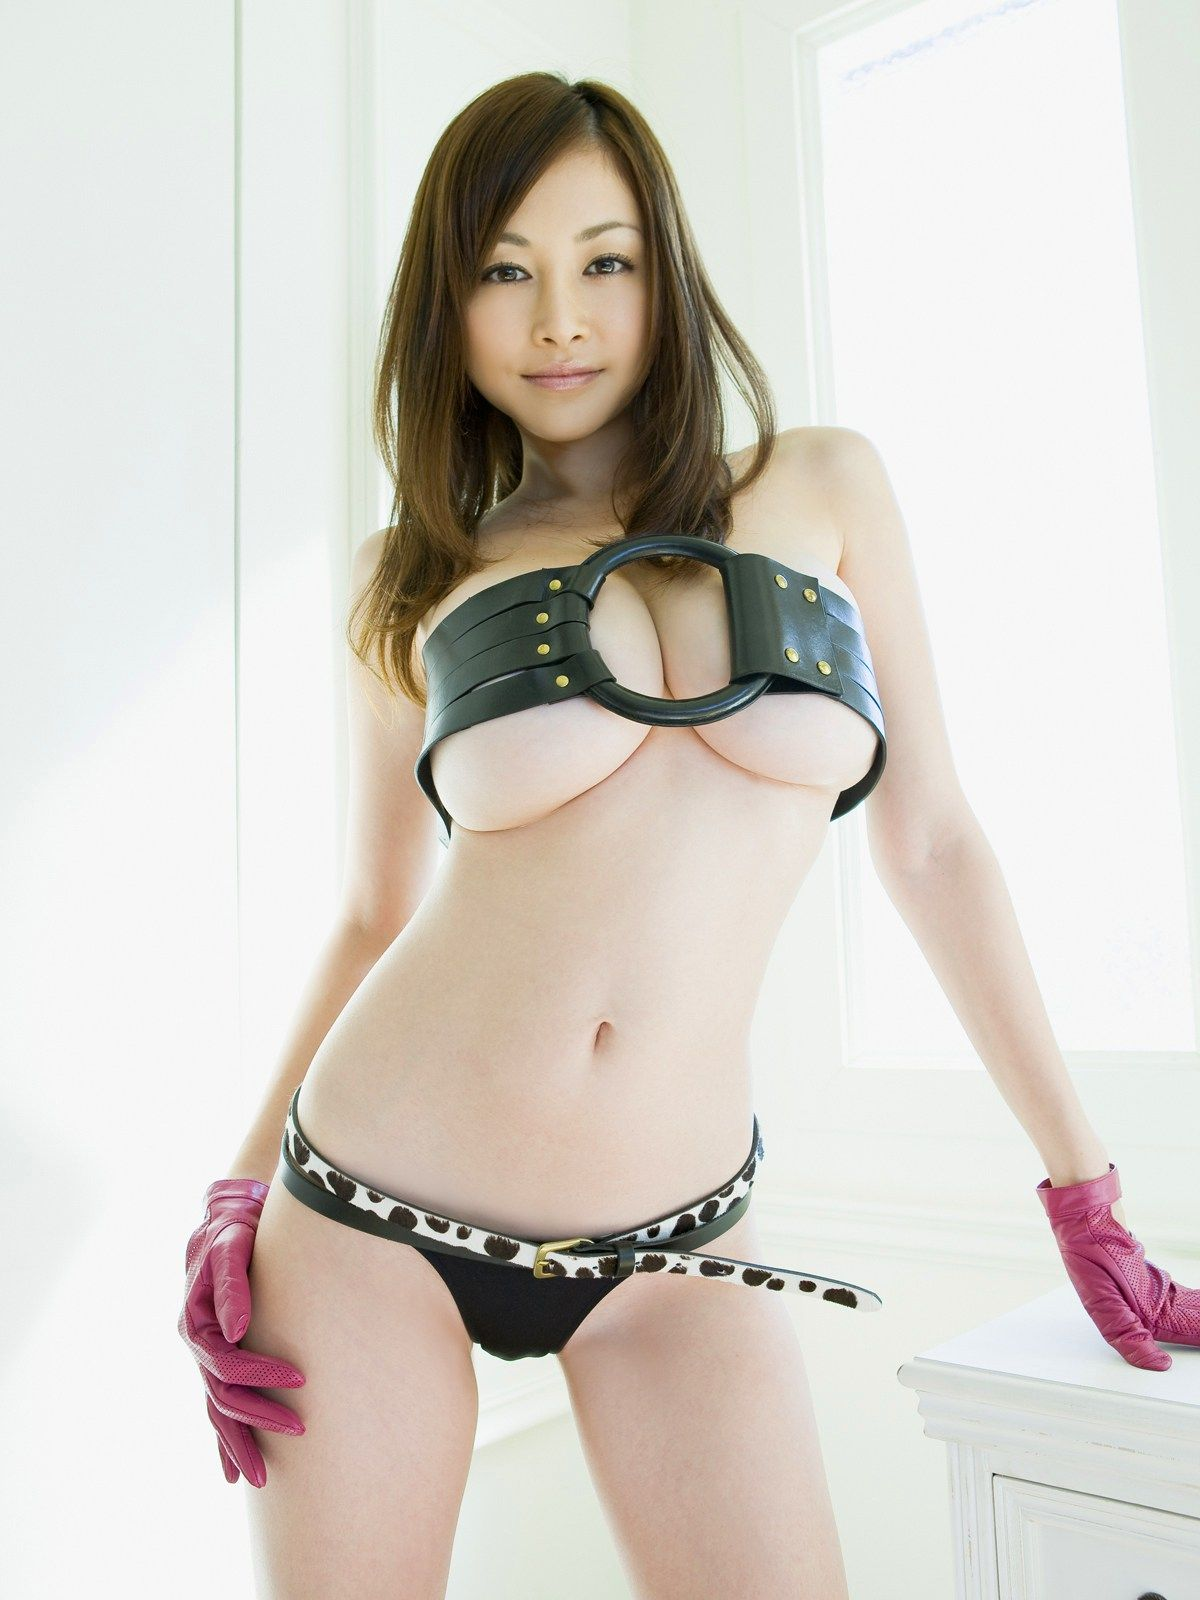 Sexy japan women picture hot girls from japan Sexy 30